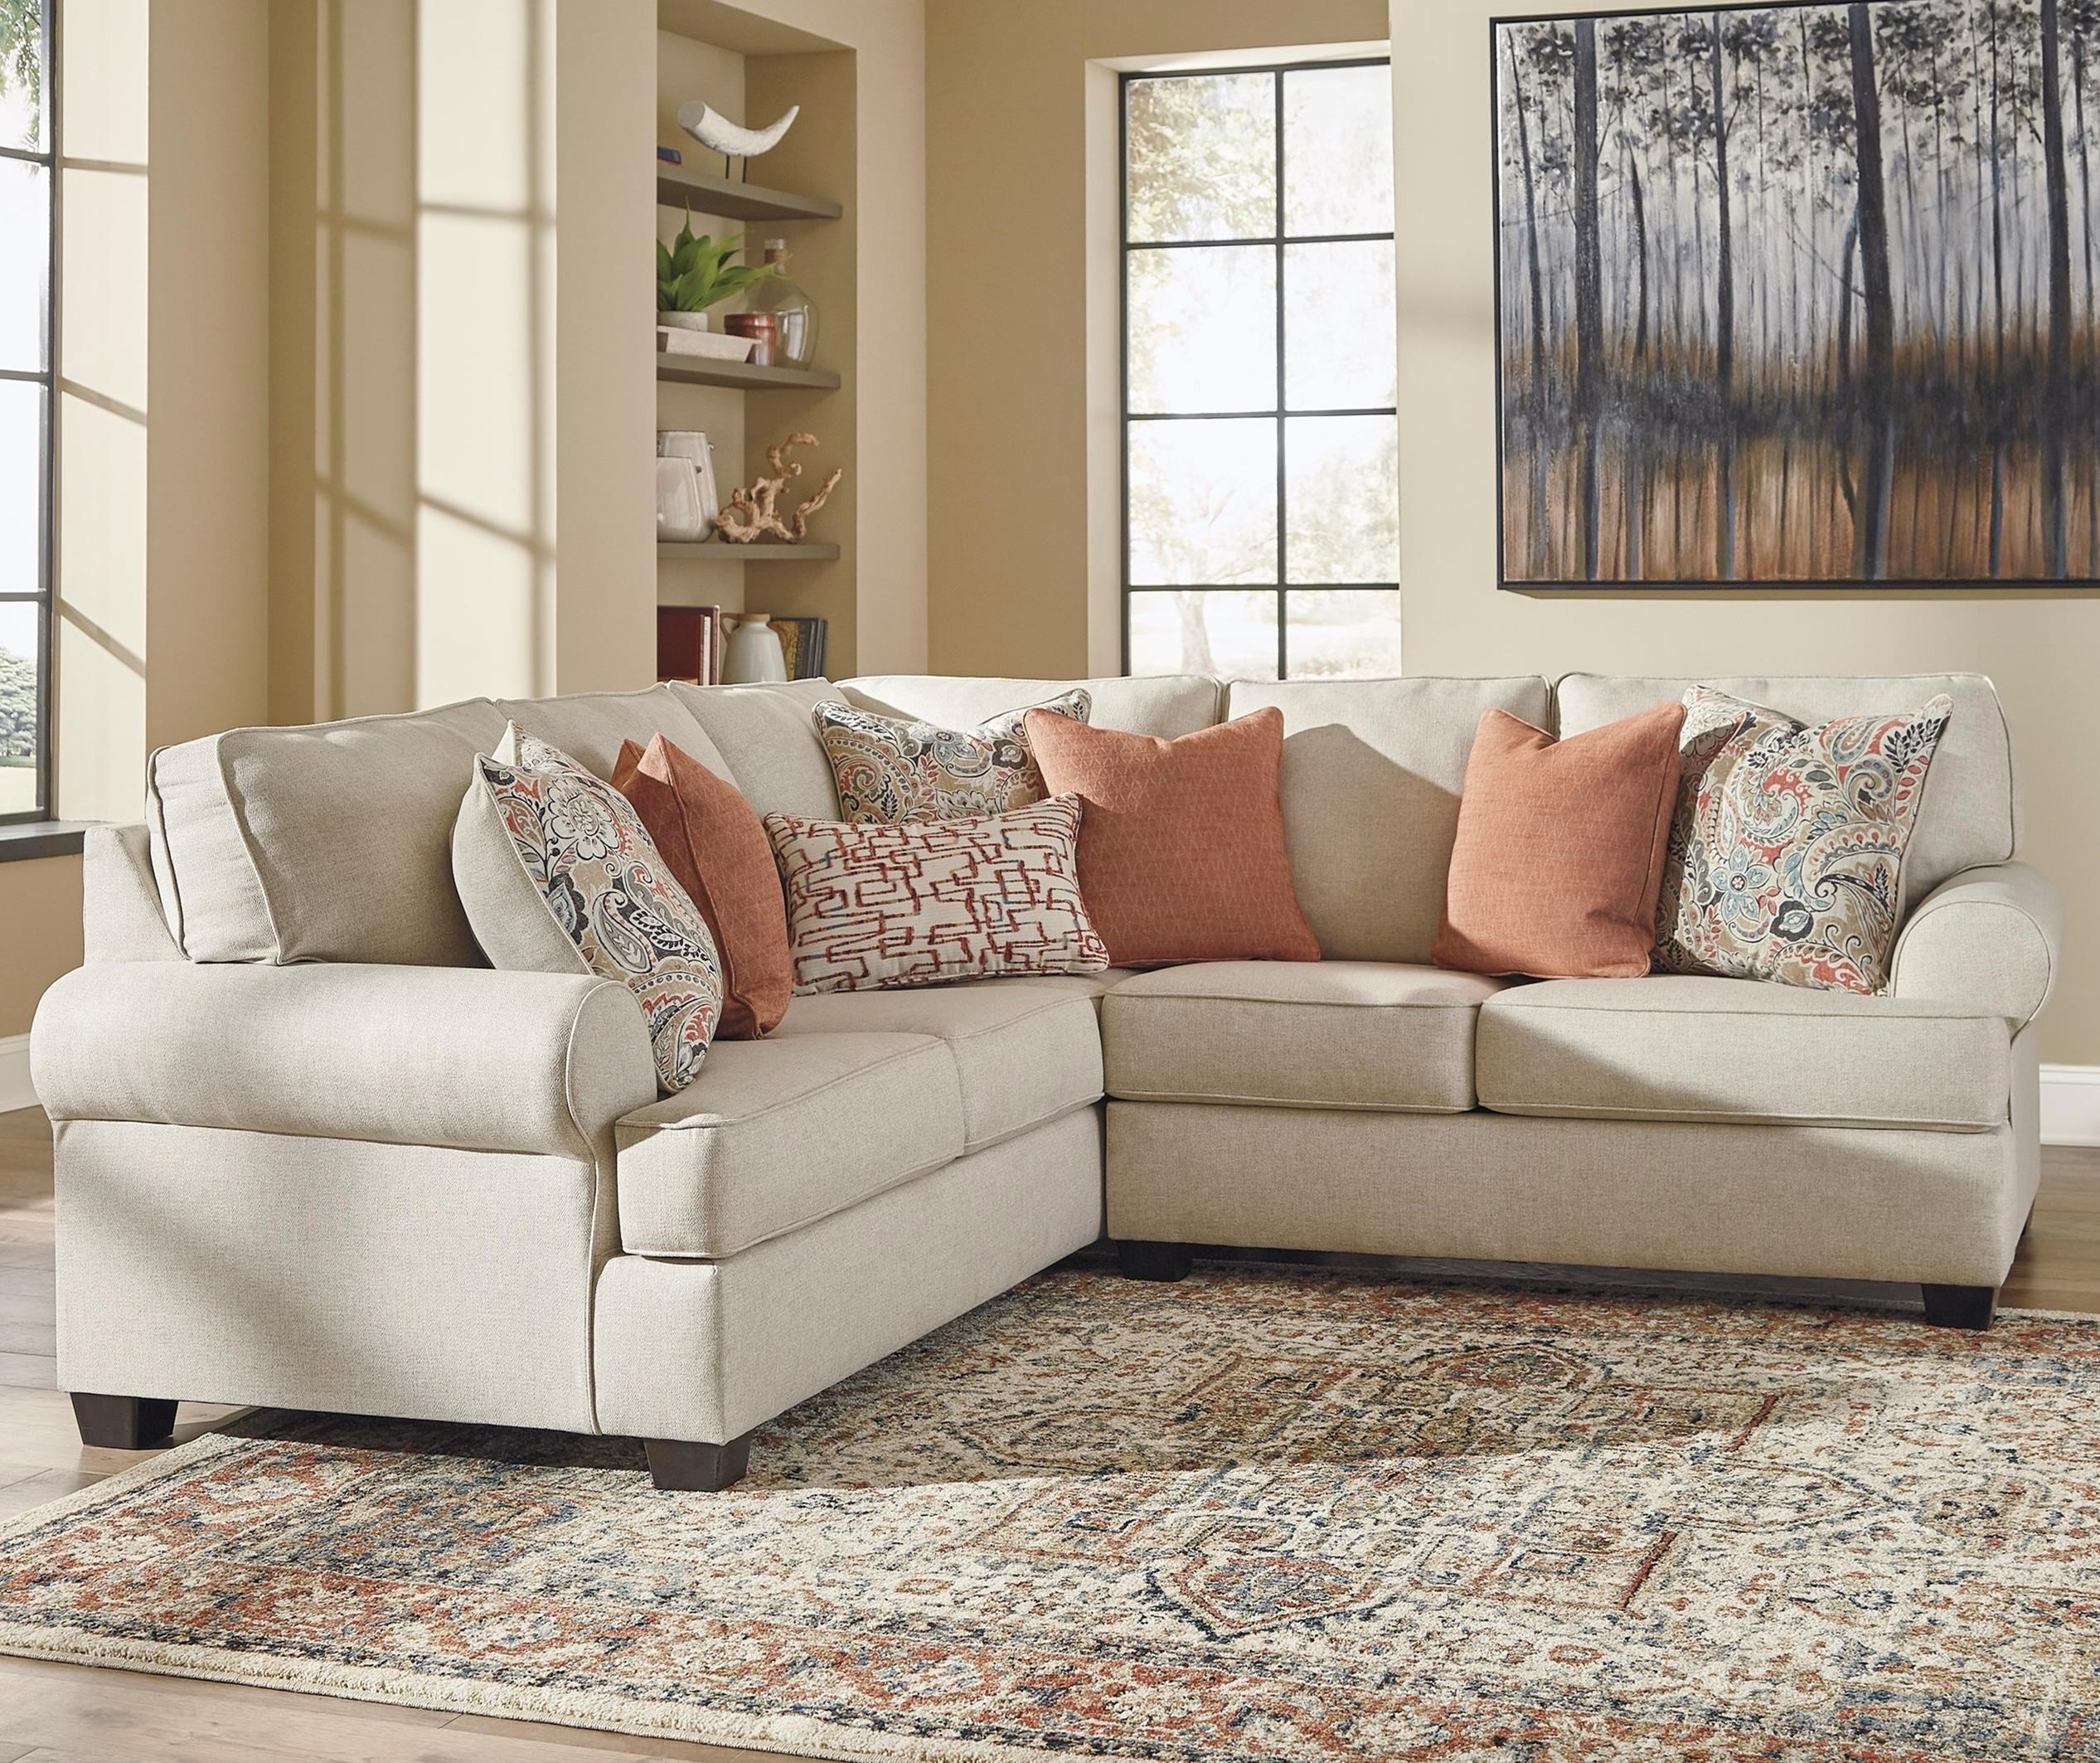 Amici 2-Piece Corner Sectional by Signature Design by Ashley at Northeast Factory Direct